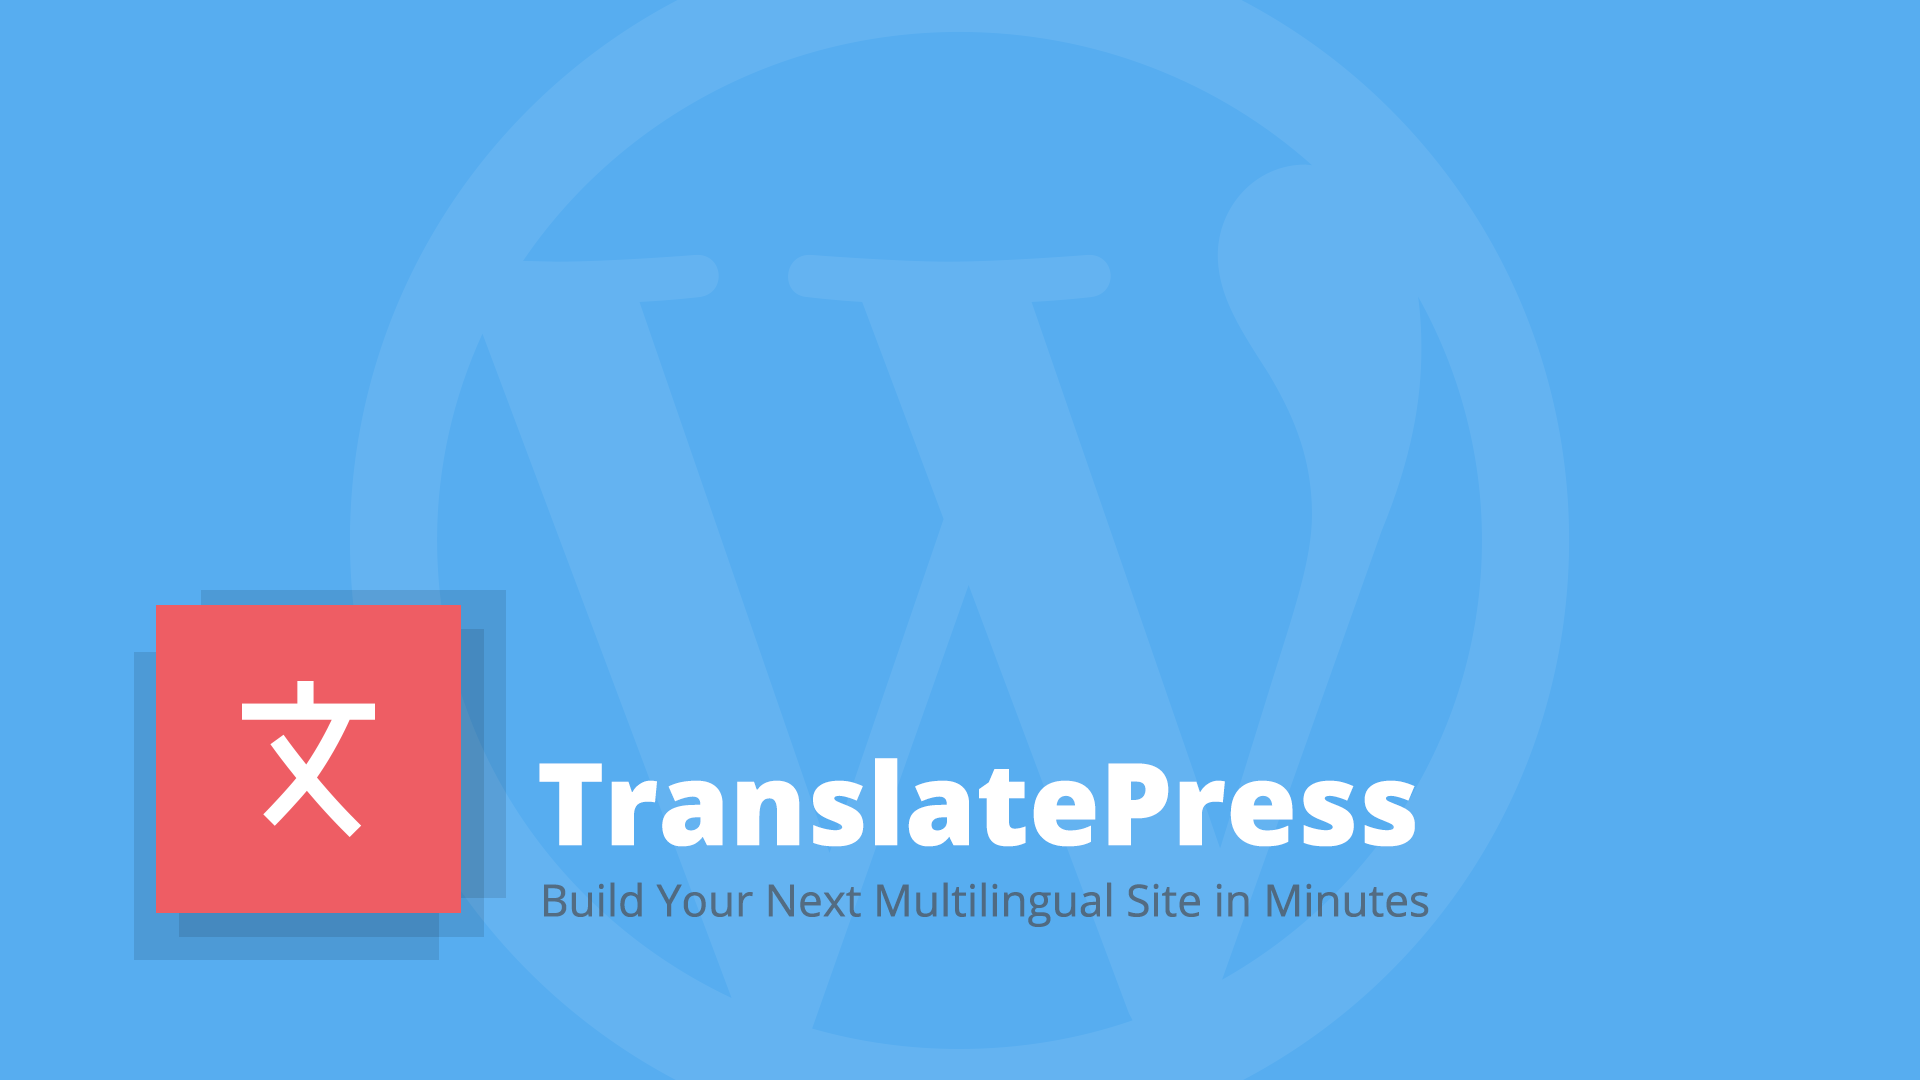 TranslatePress – Build Your Next Multilingual Site in Minutes 1 translatepress Extensive Reviews